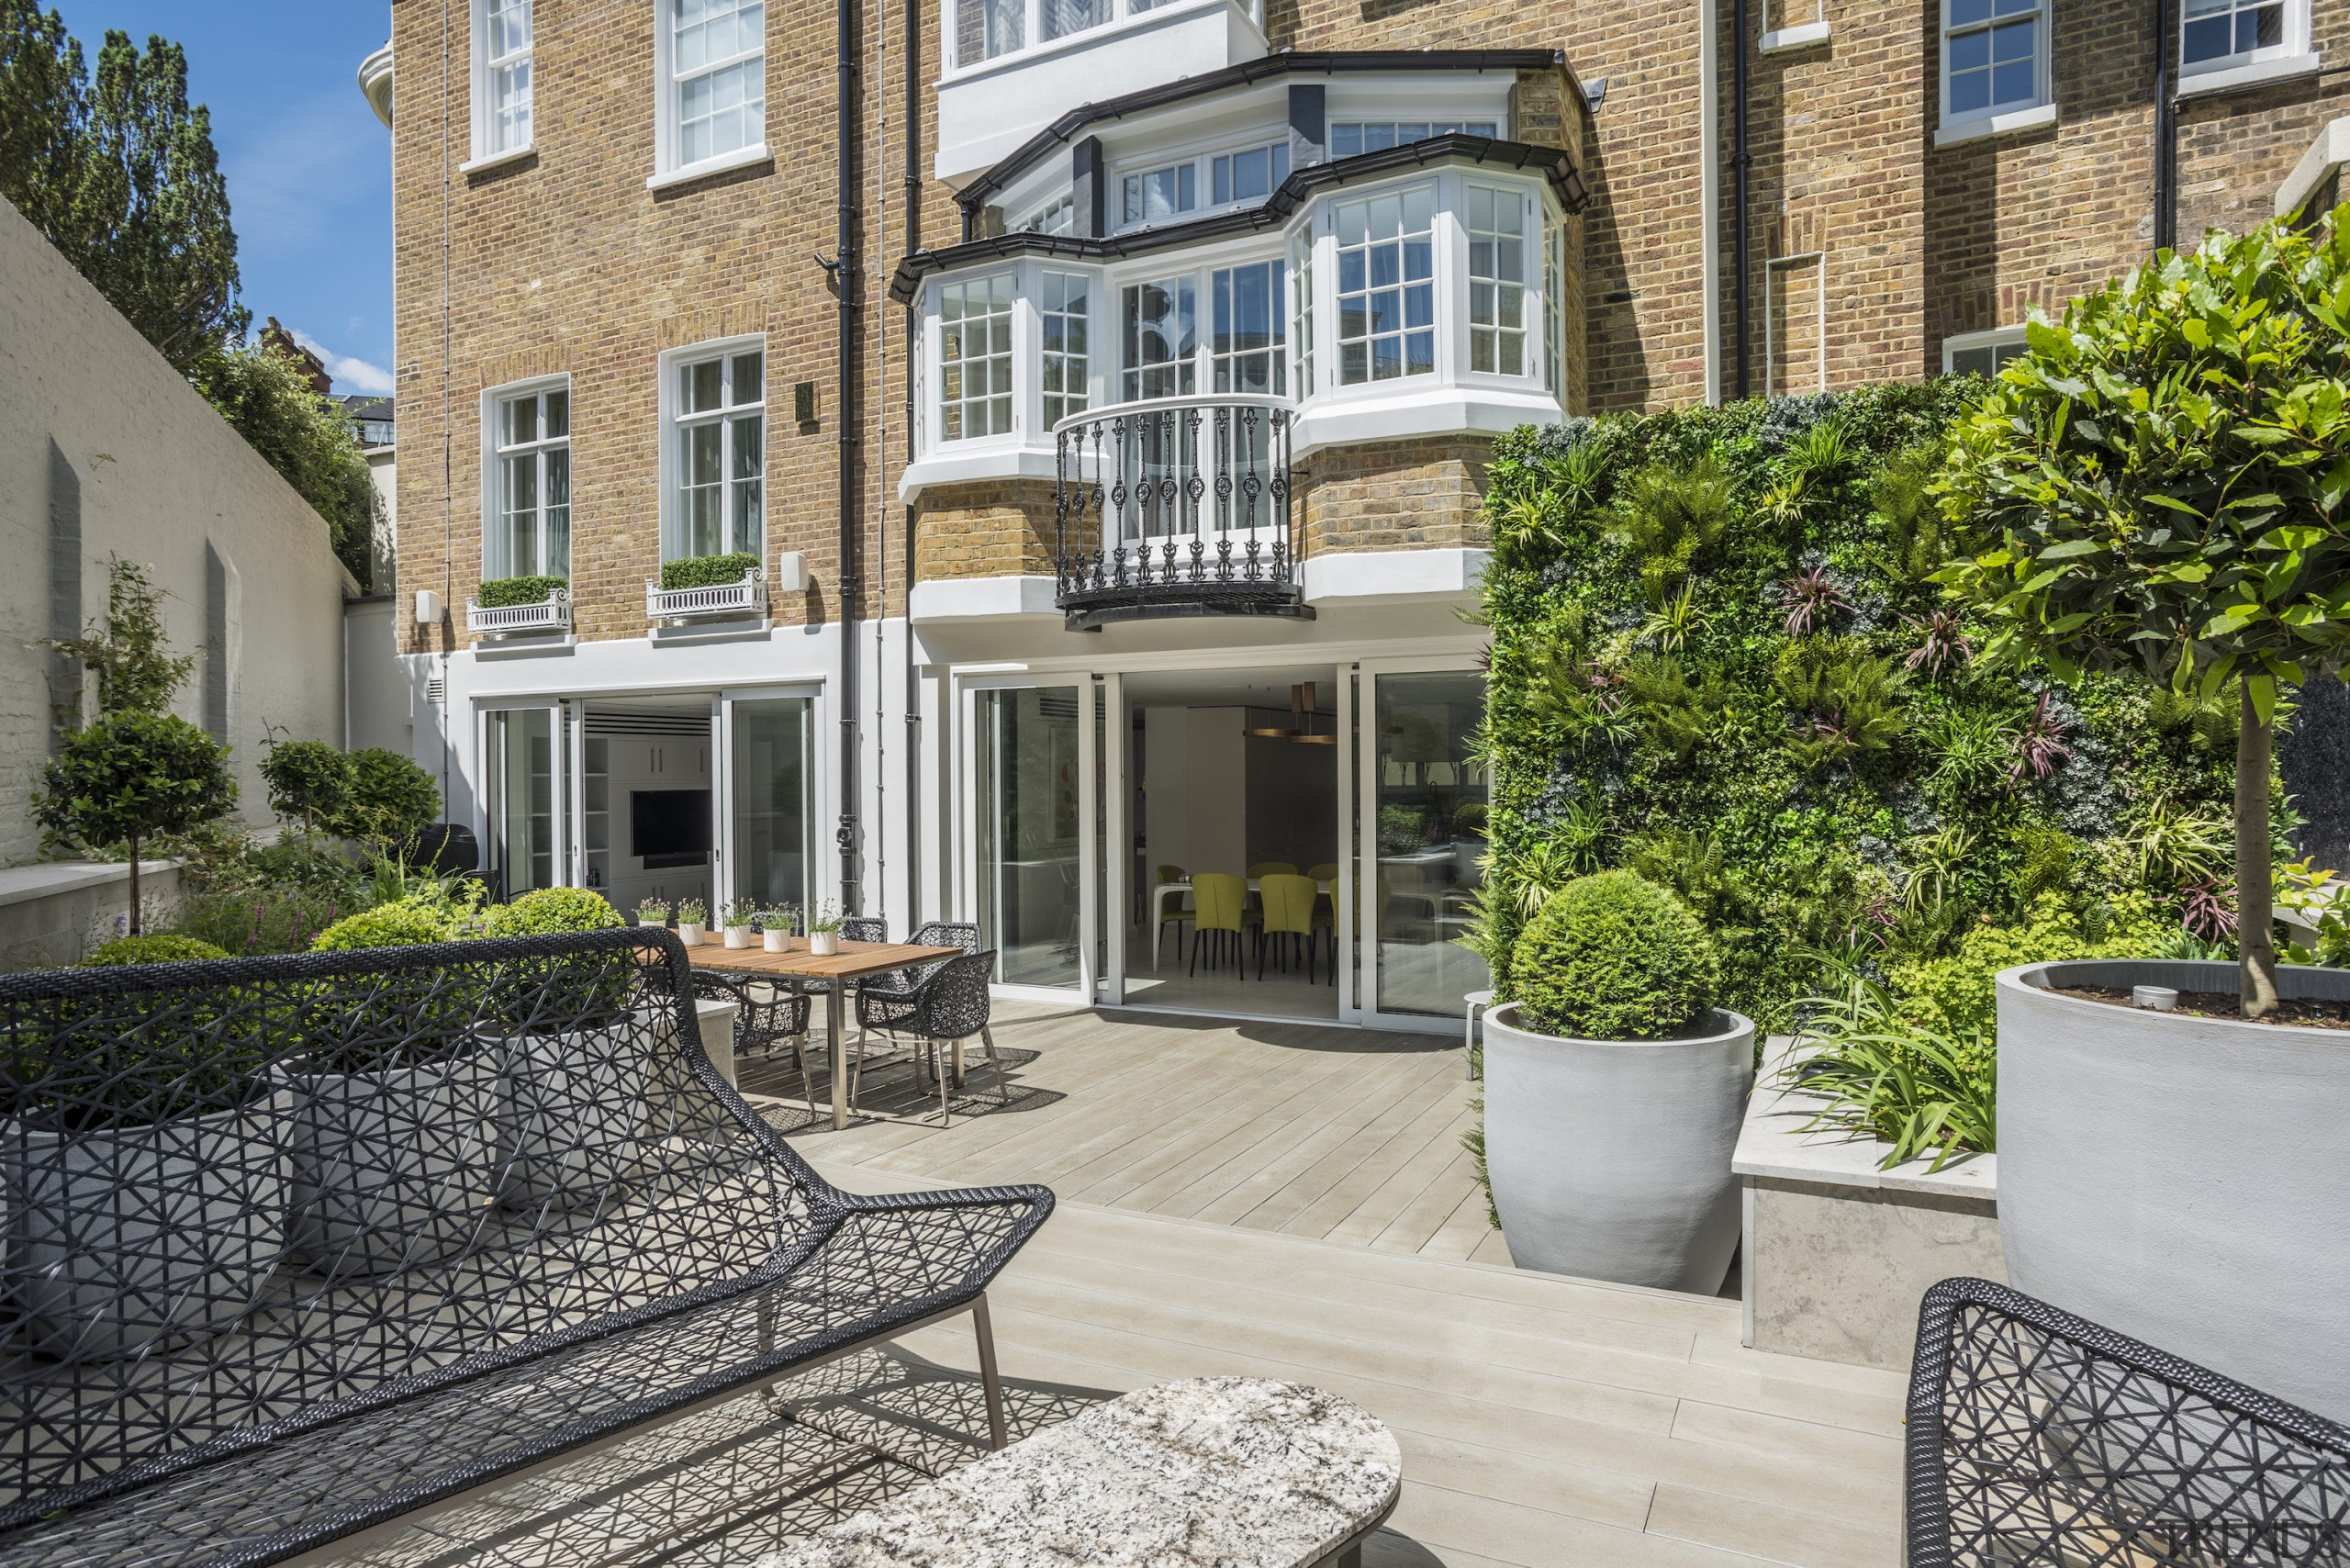 The newly enlarged sunken terrace and garden area